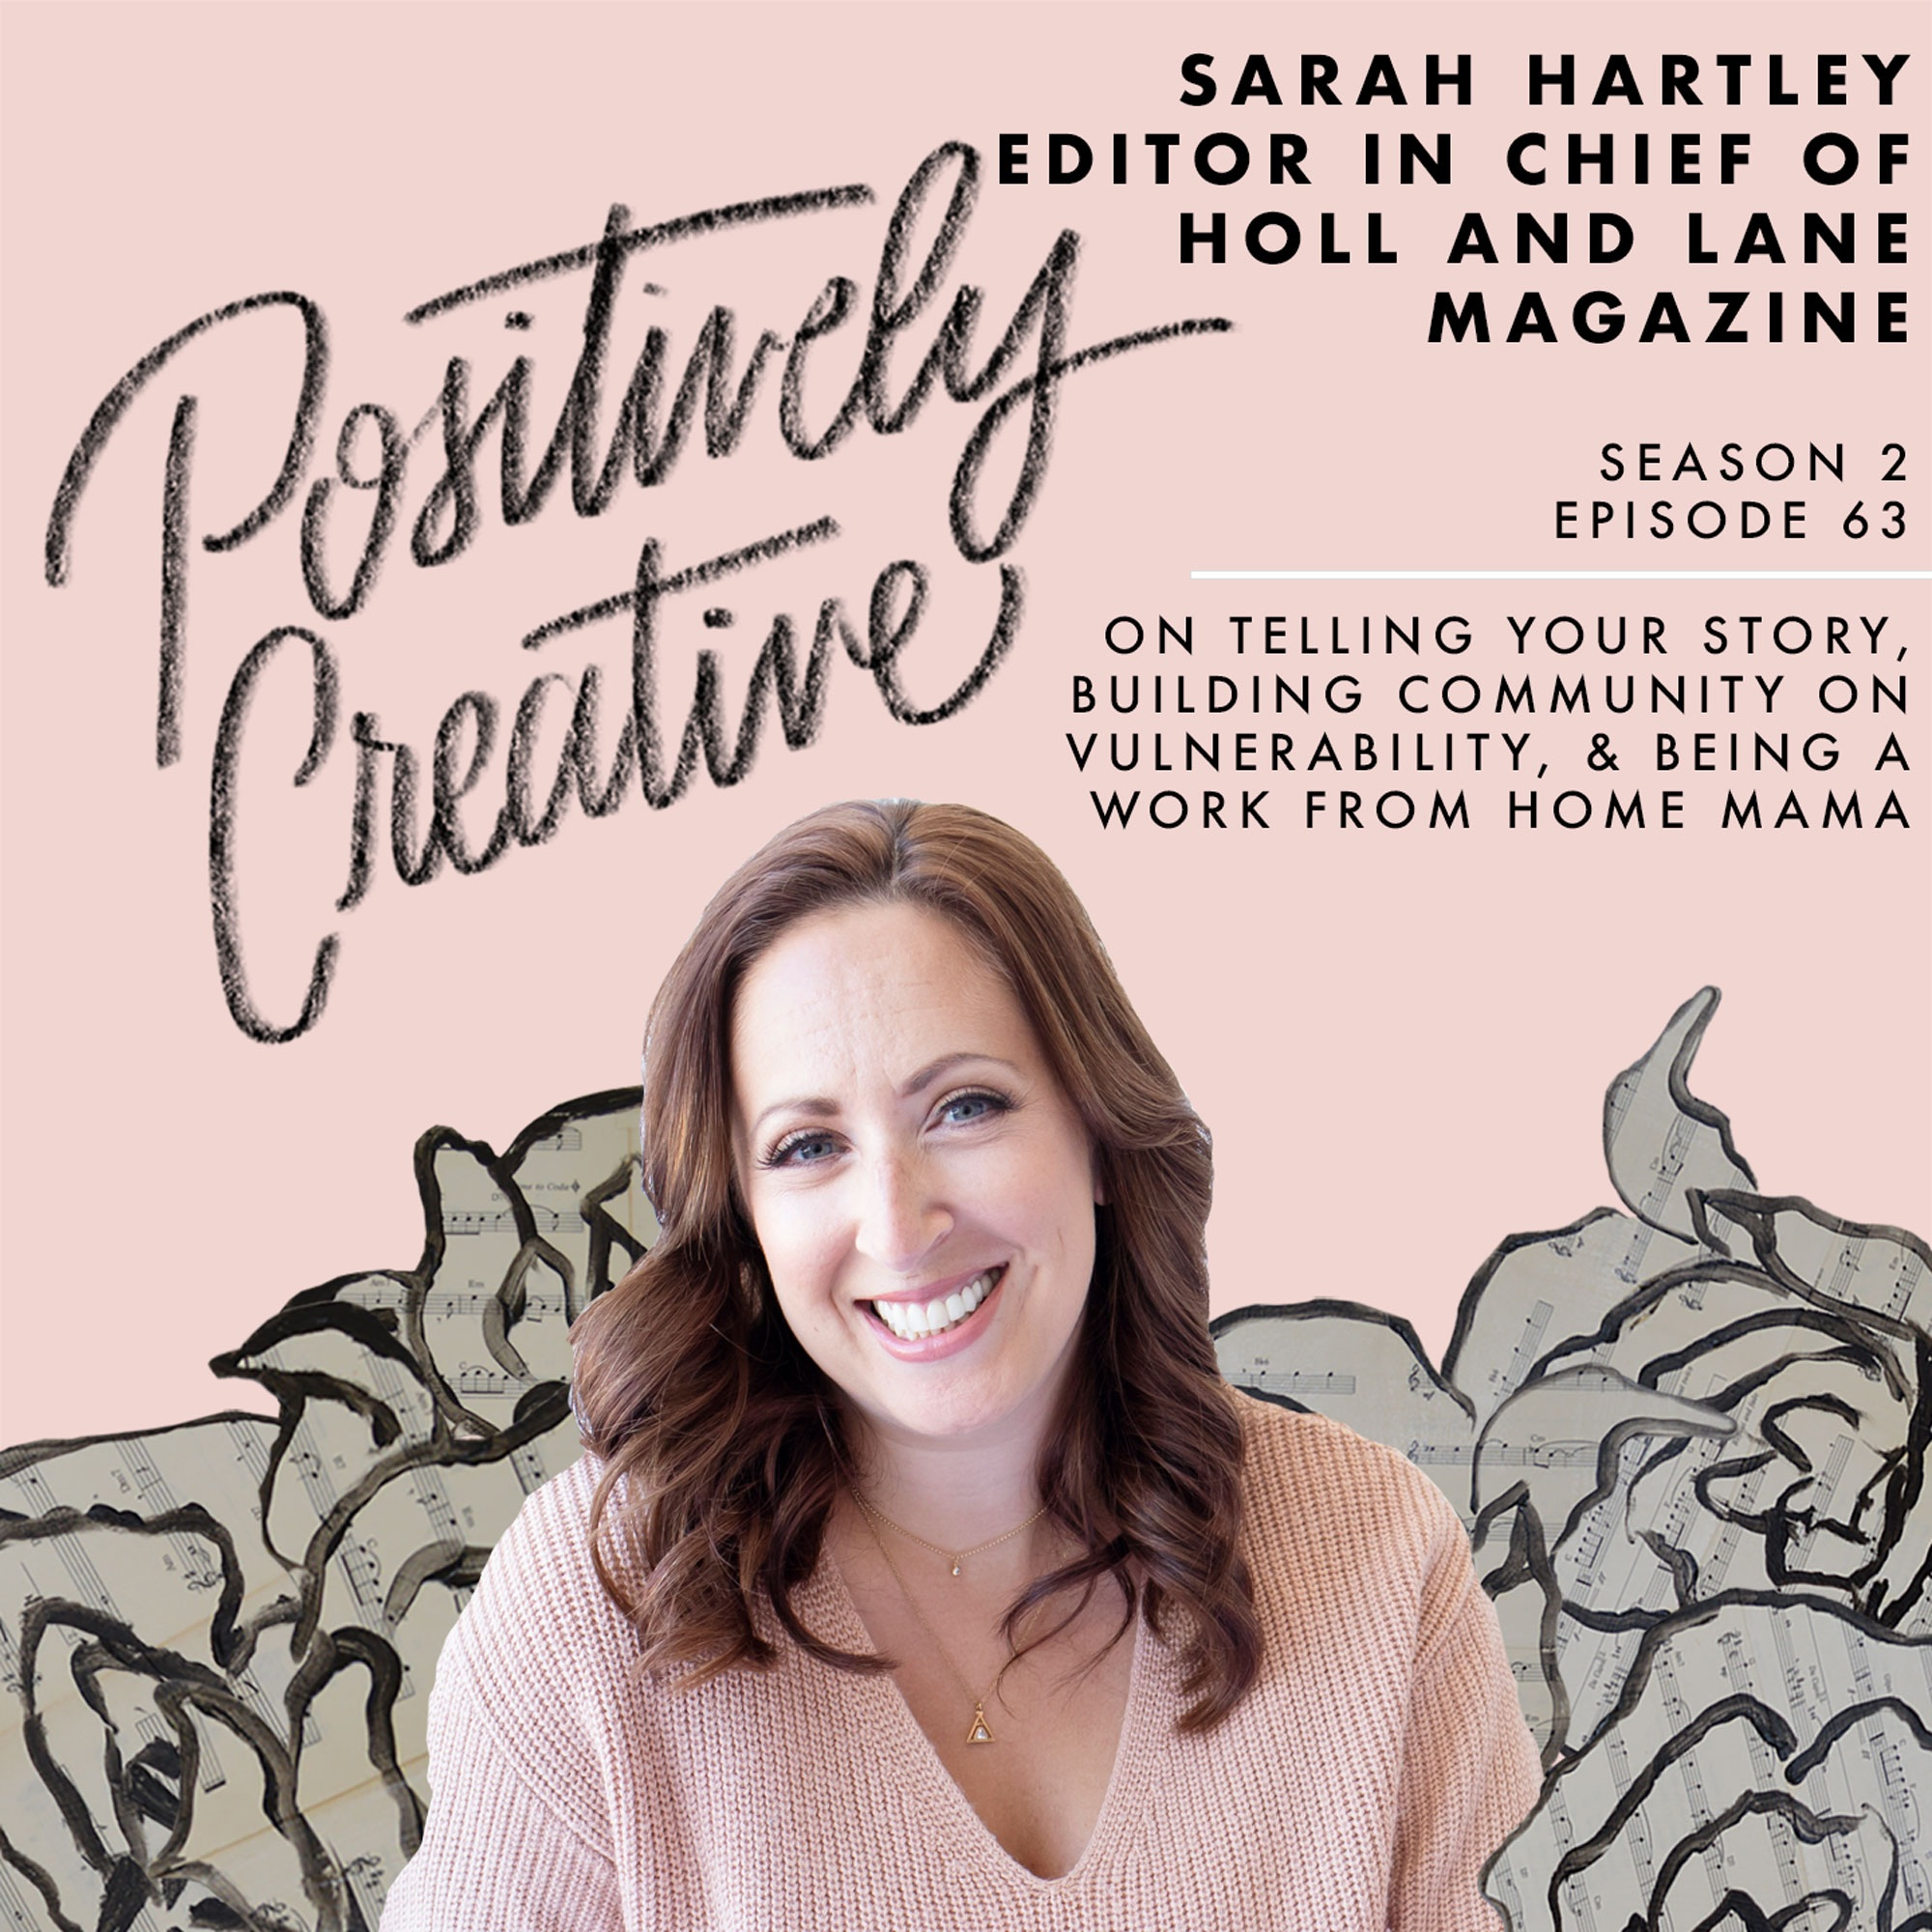 S2-Ep-63---Sarah-Hartley%2C-Editor-in-Chief-of-Holl-and-Lane-Magazine-on-Telling-Your-Story%2C-Building-Community-on-Vulnerability%2C-%26-Being-a-Work-from-Home-Mama.jpg